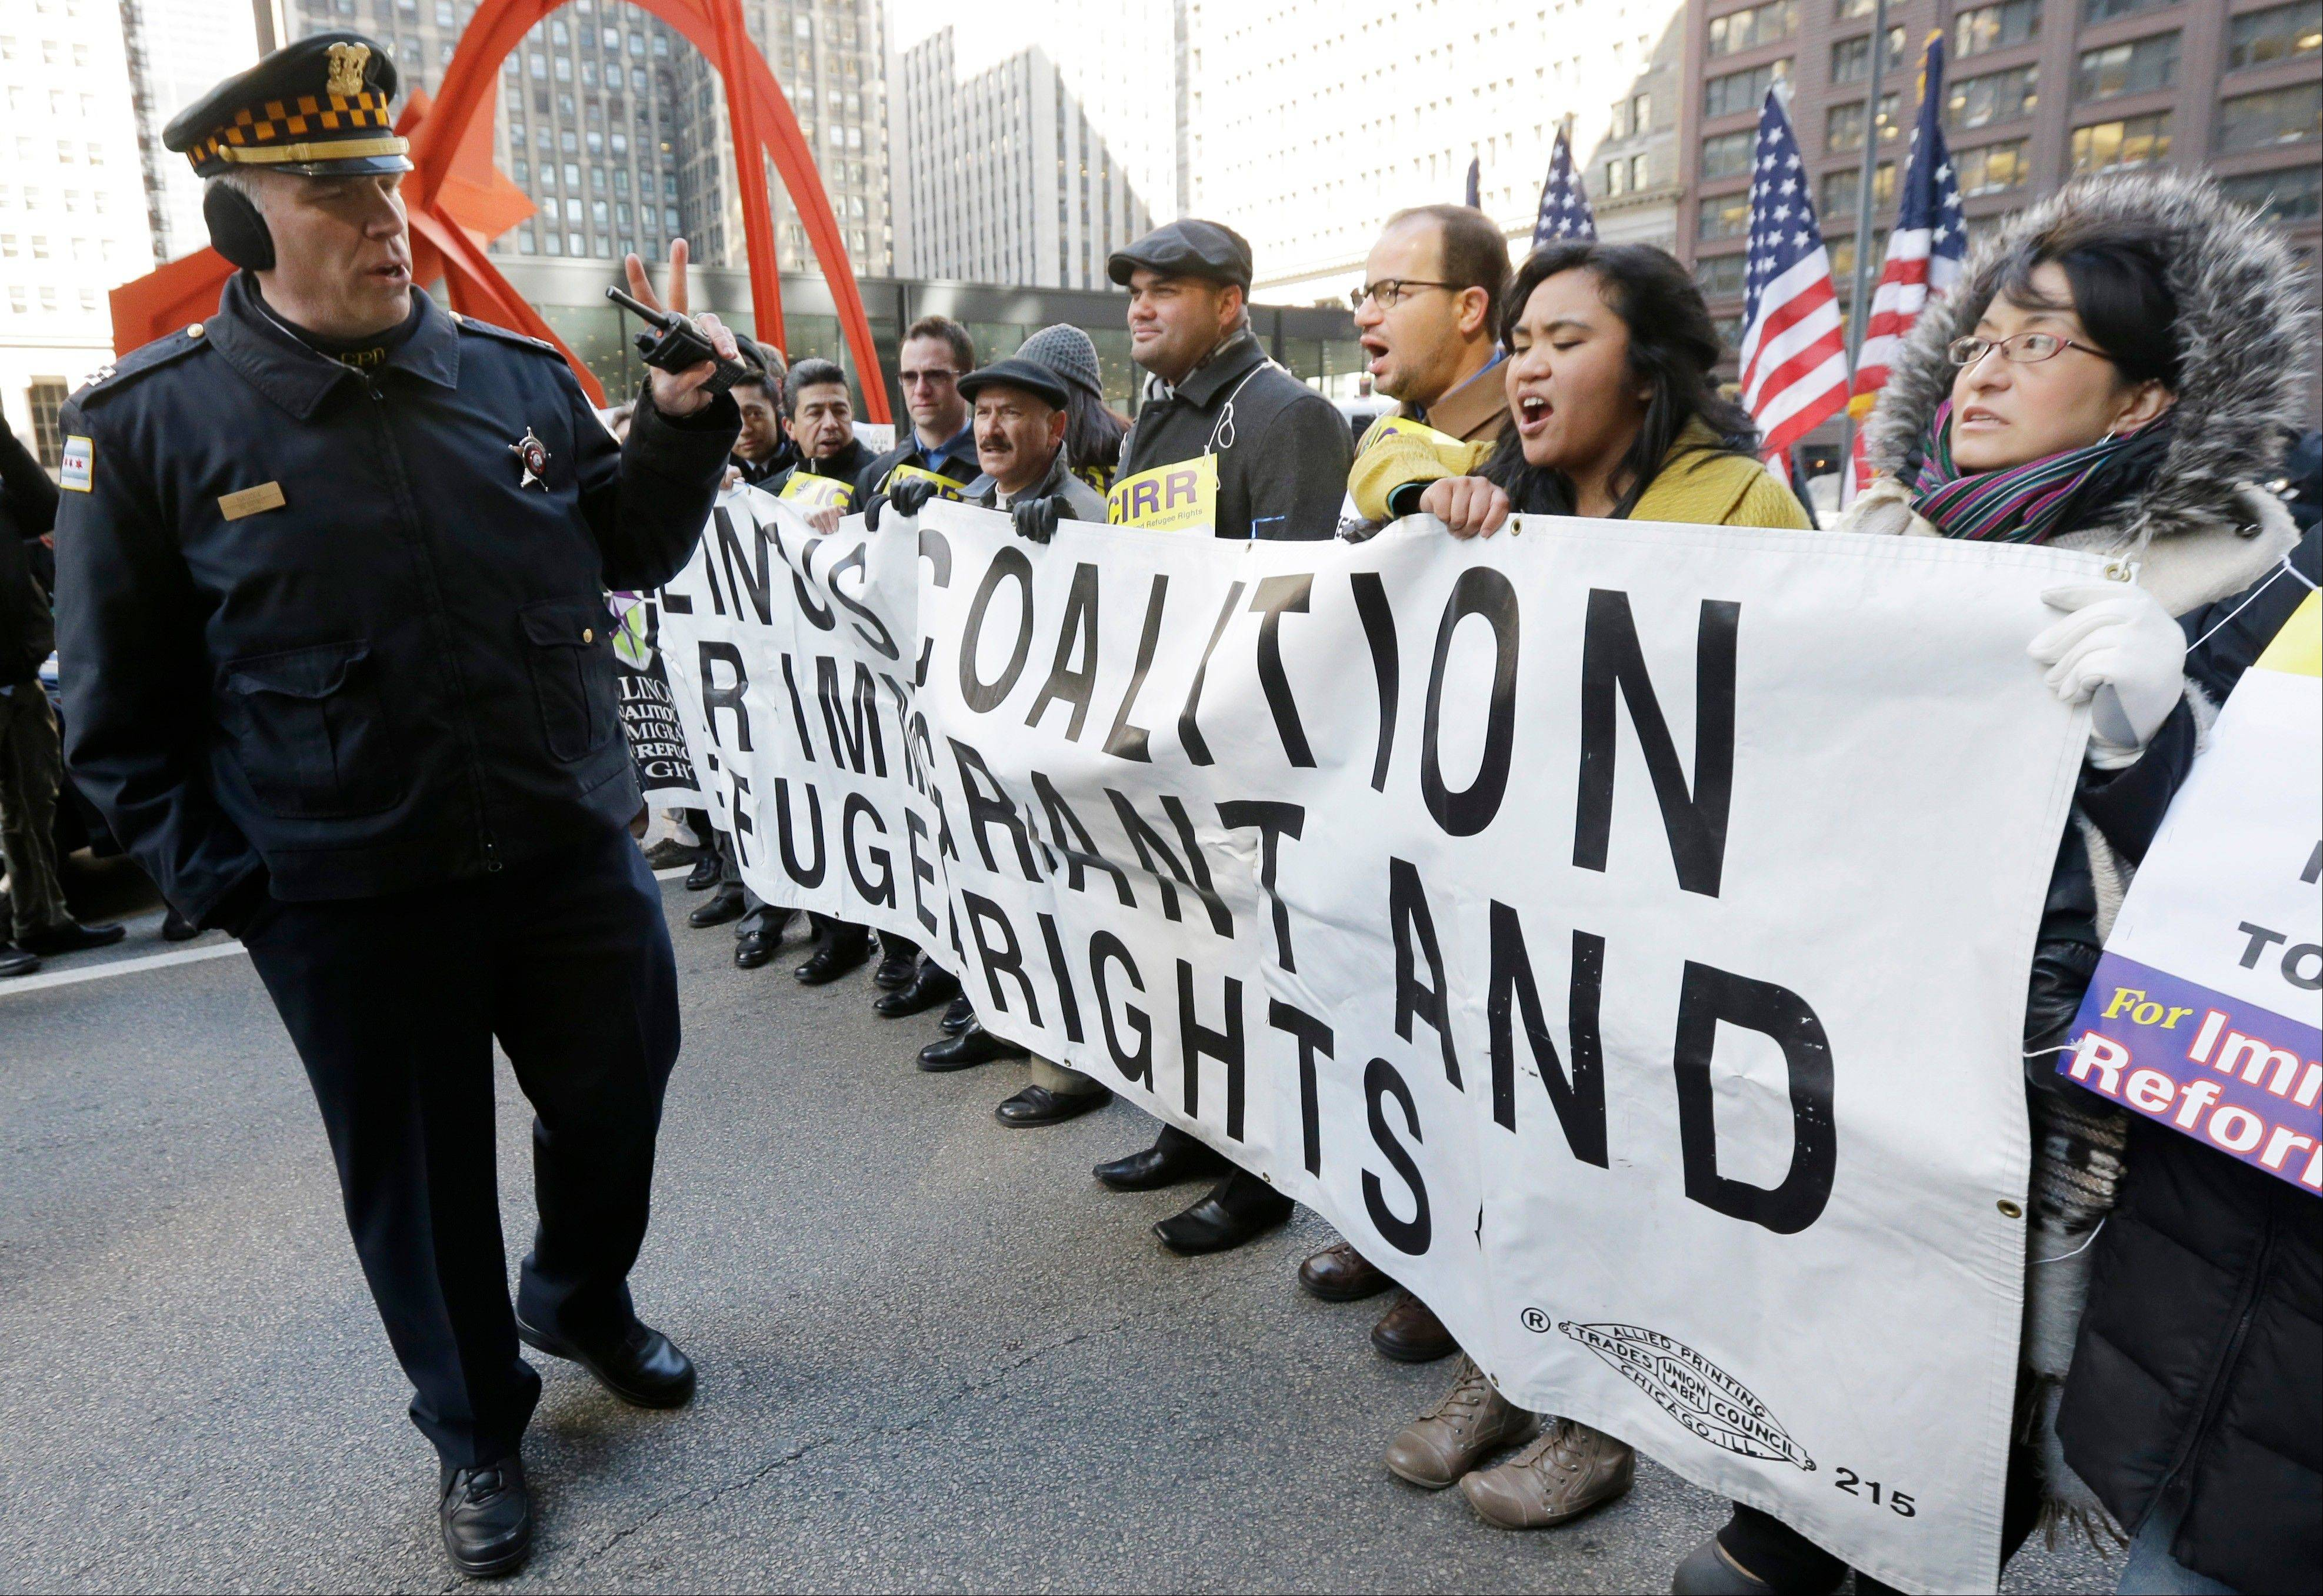 A pro-immigration reform demonstration took place in Chicago on Friday.